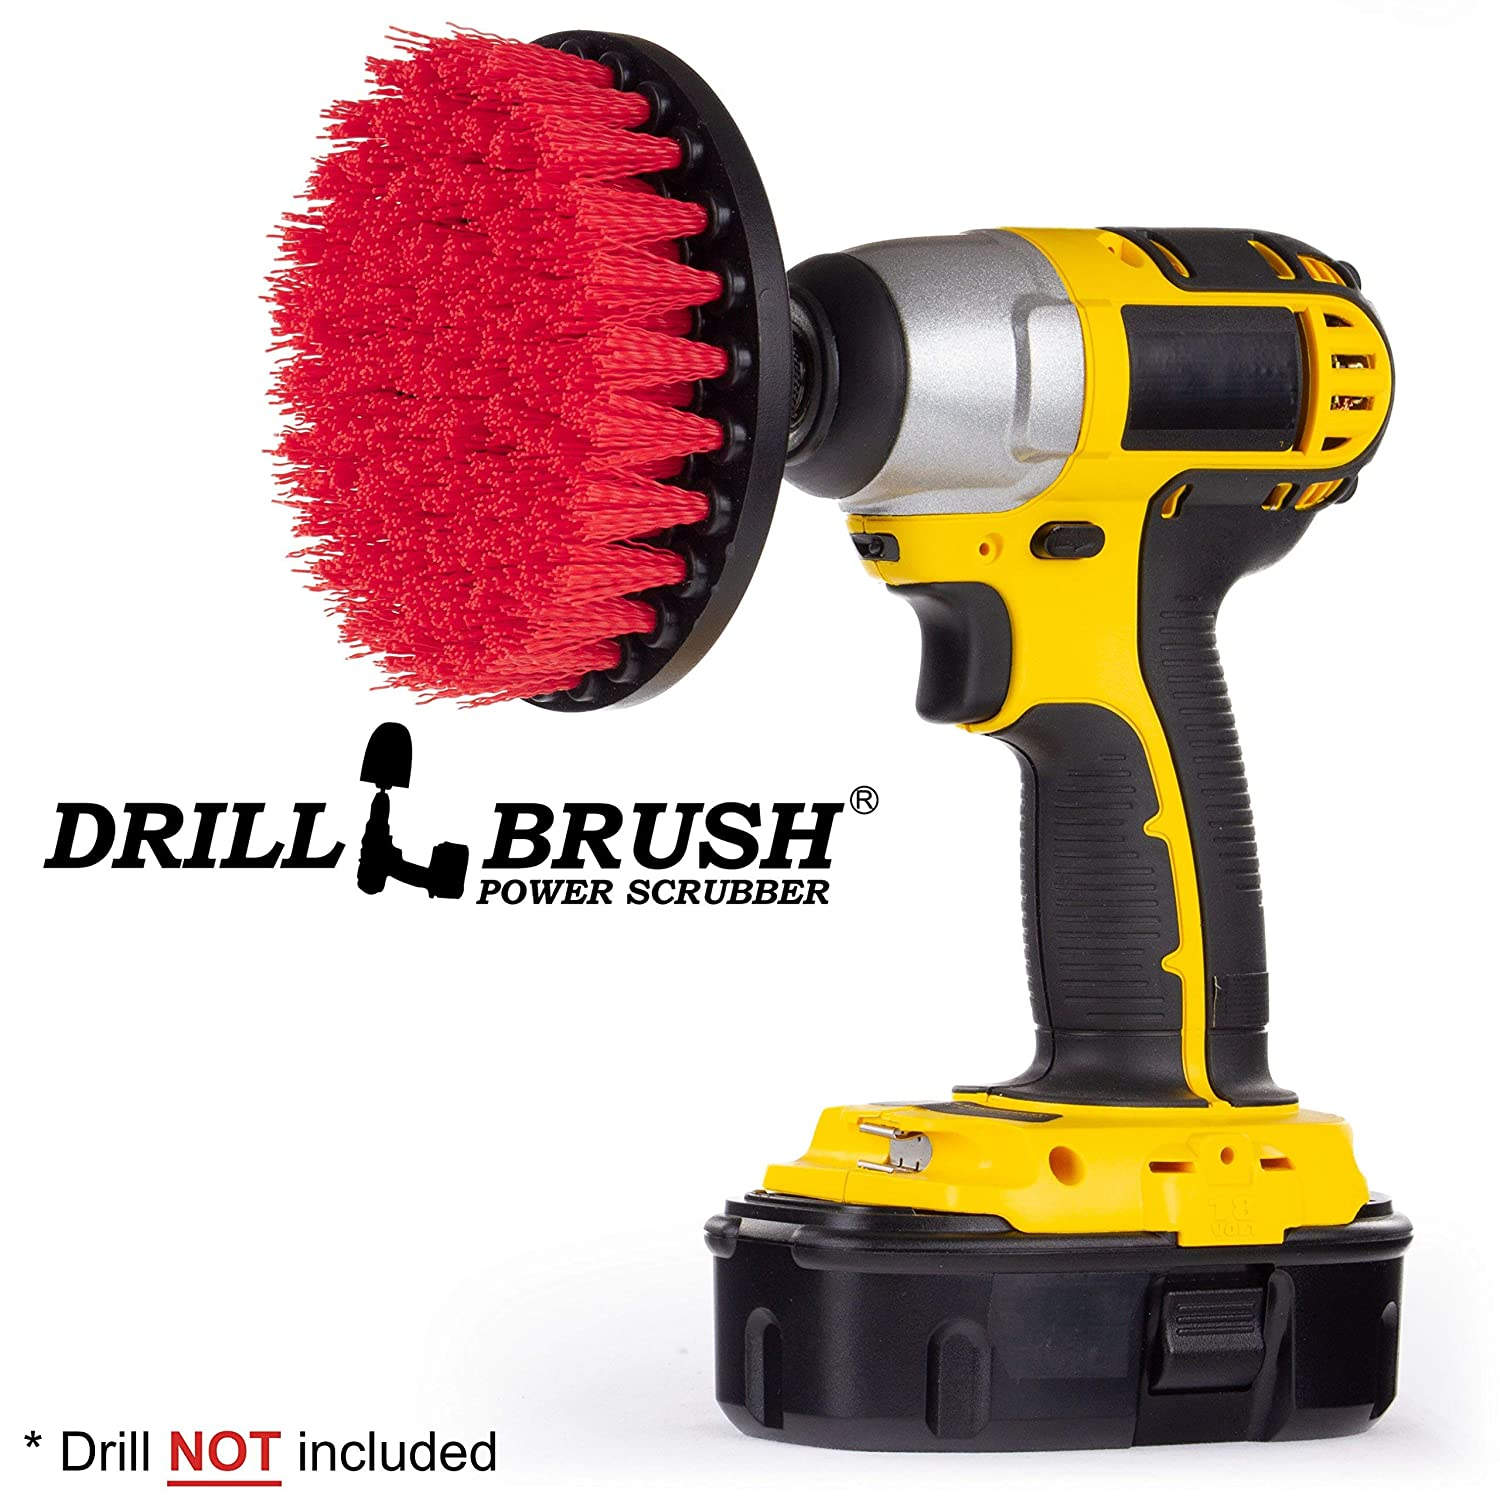 Drill Brush - Deck Scrub Brush - Bird Bath - Garden Statues - Clean and Remove Algae, Mold, Lichens, Mildew, Moss, Oxidation - Granite, Marble Cleaner - Outdoor Fountains - Headstones, and Monuments Drillbrush 5in-Lim-Red-Short-QC